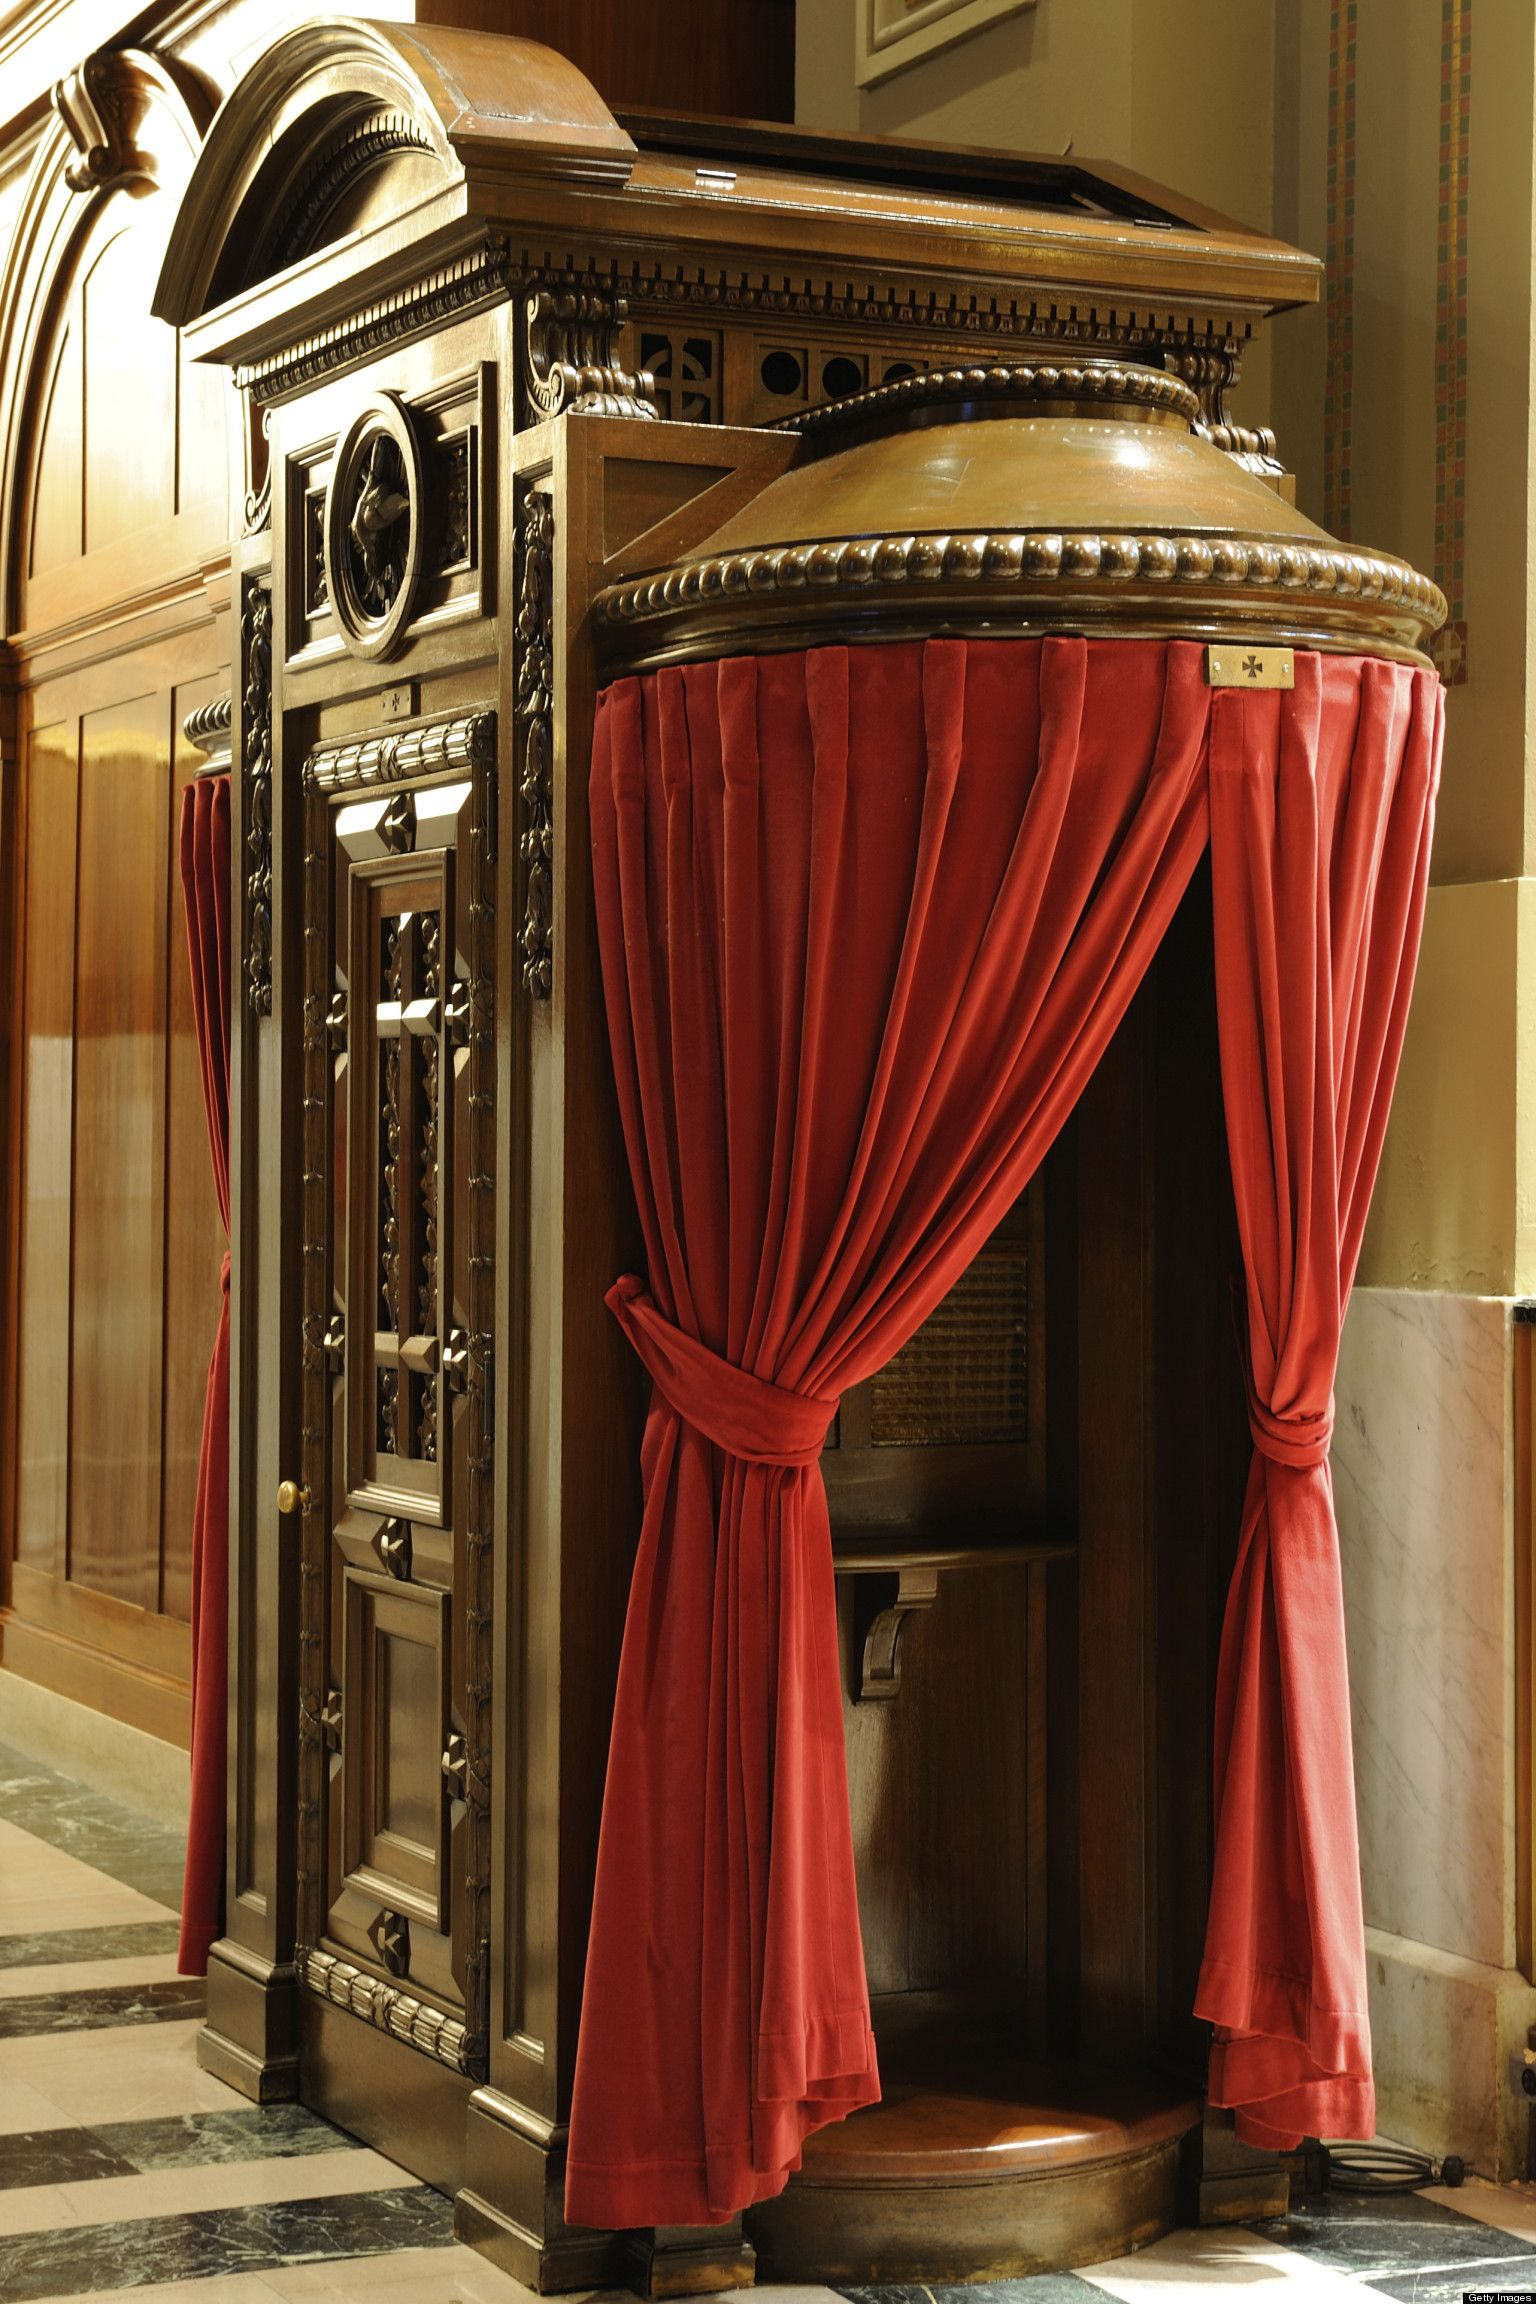 confession booth inside - Google Search   confession booth ...